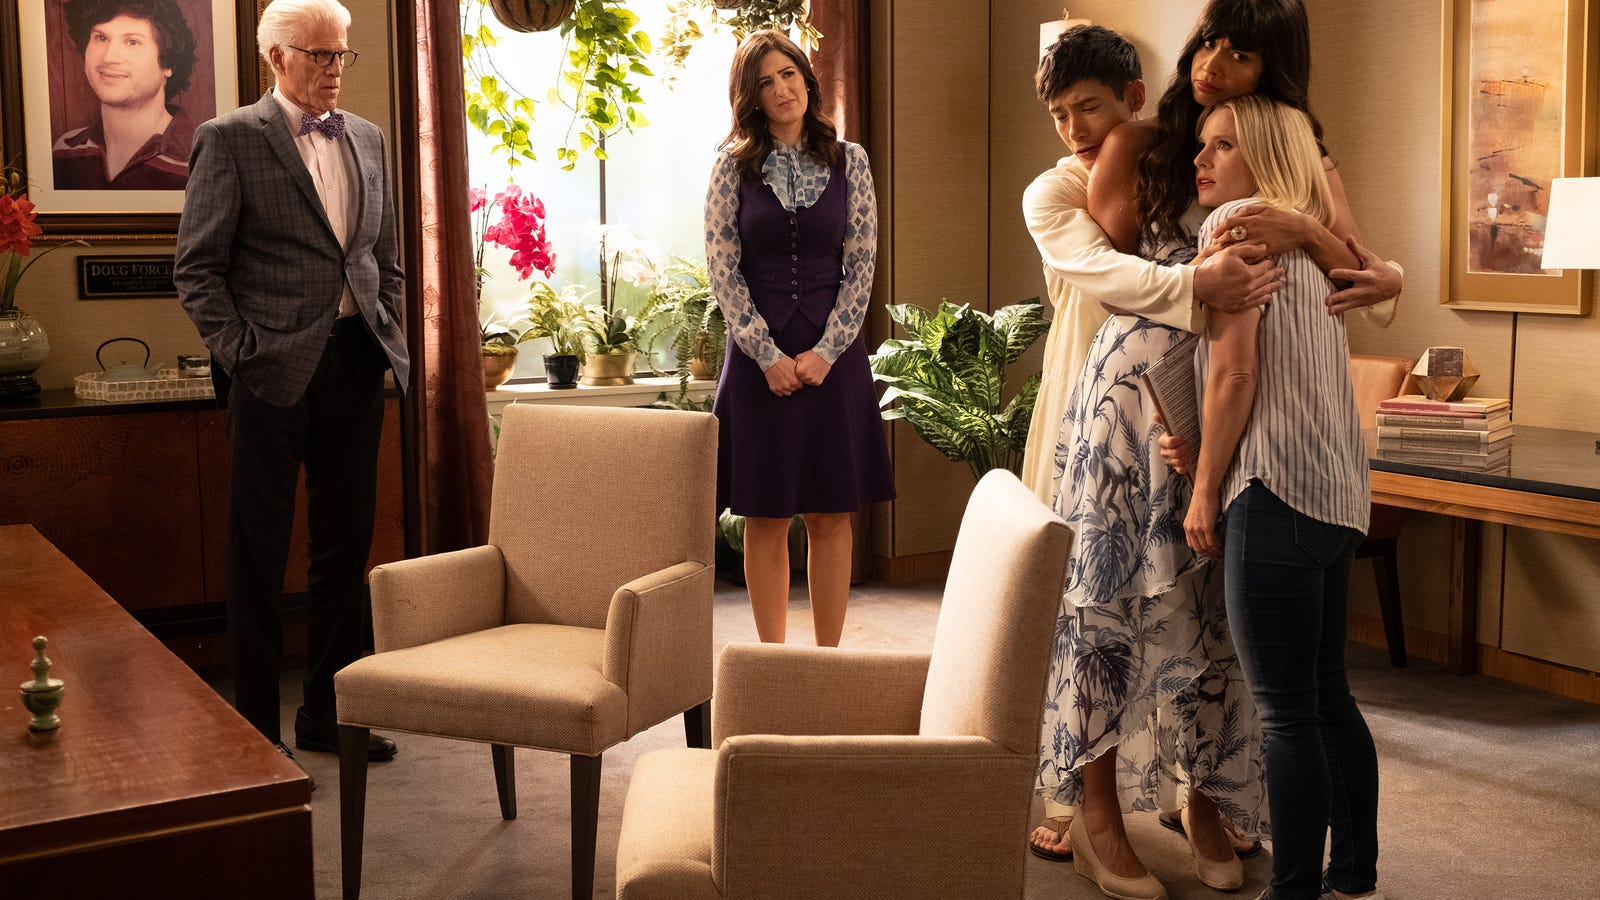 The Good Place writers want you to keep trying until the very end